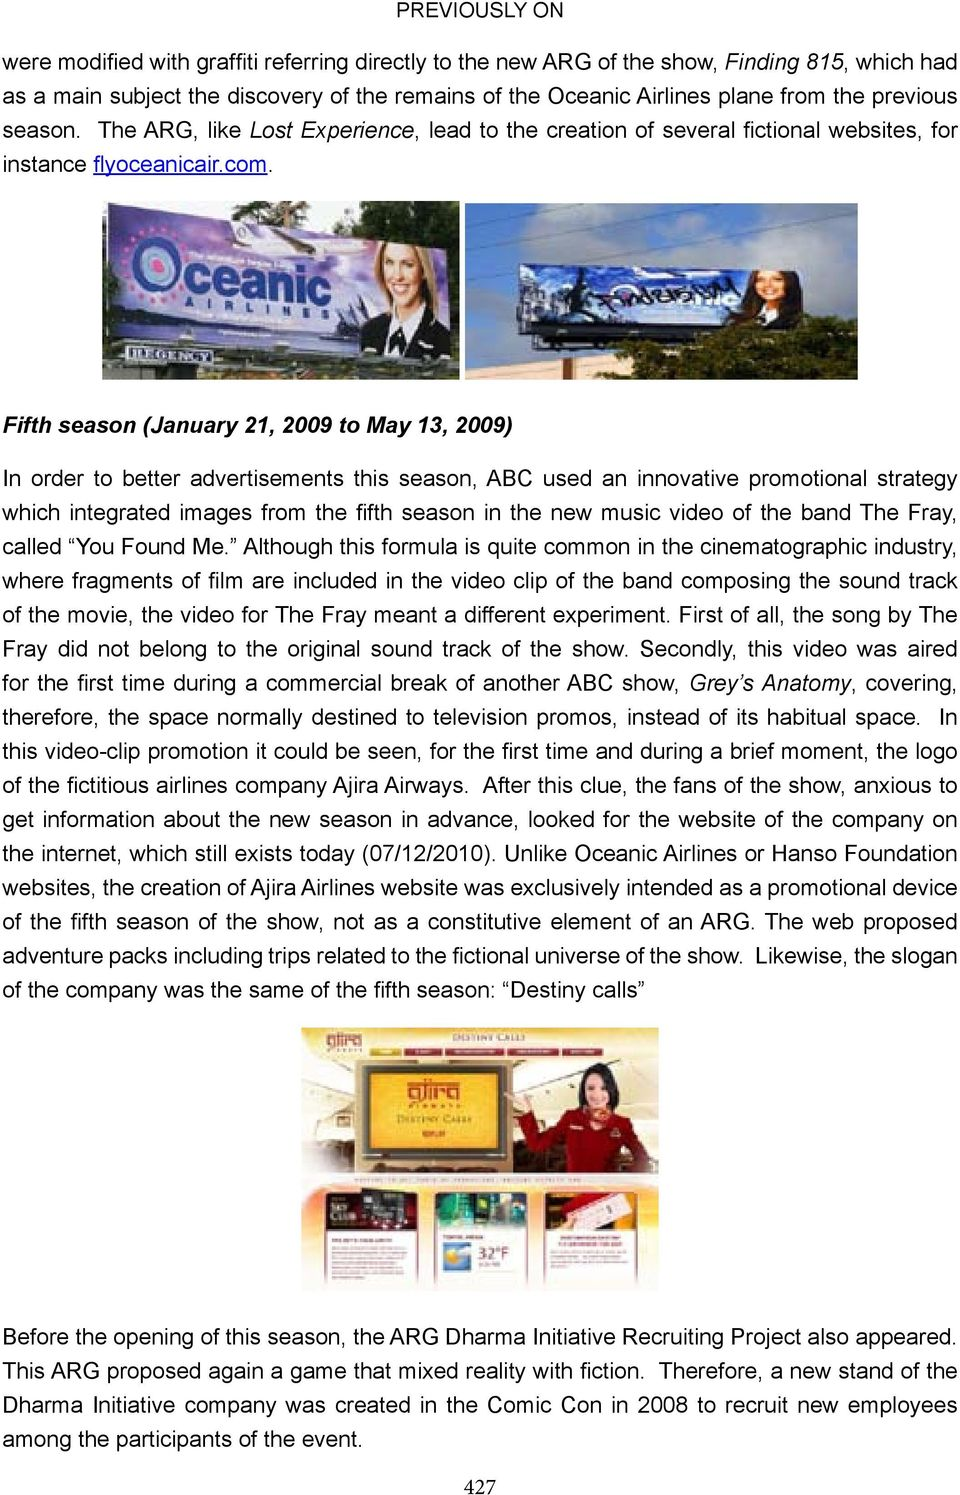 Fifth season (January 21, 2009 to May 13, 2009) In order to better advertisements this season, ABC used an innovative promotional strategy which integrated images from the fifth season in the new